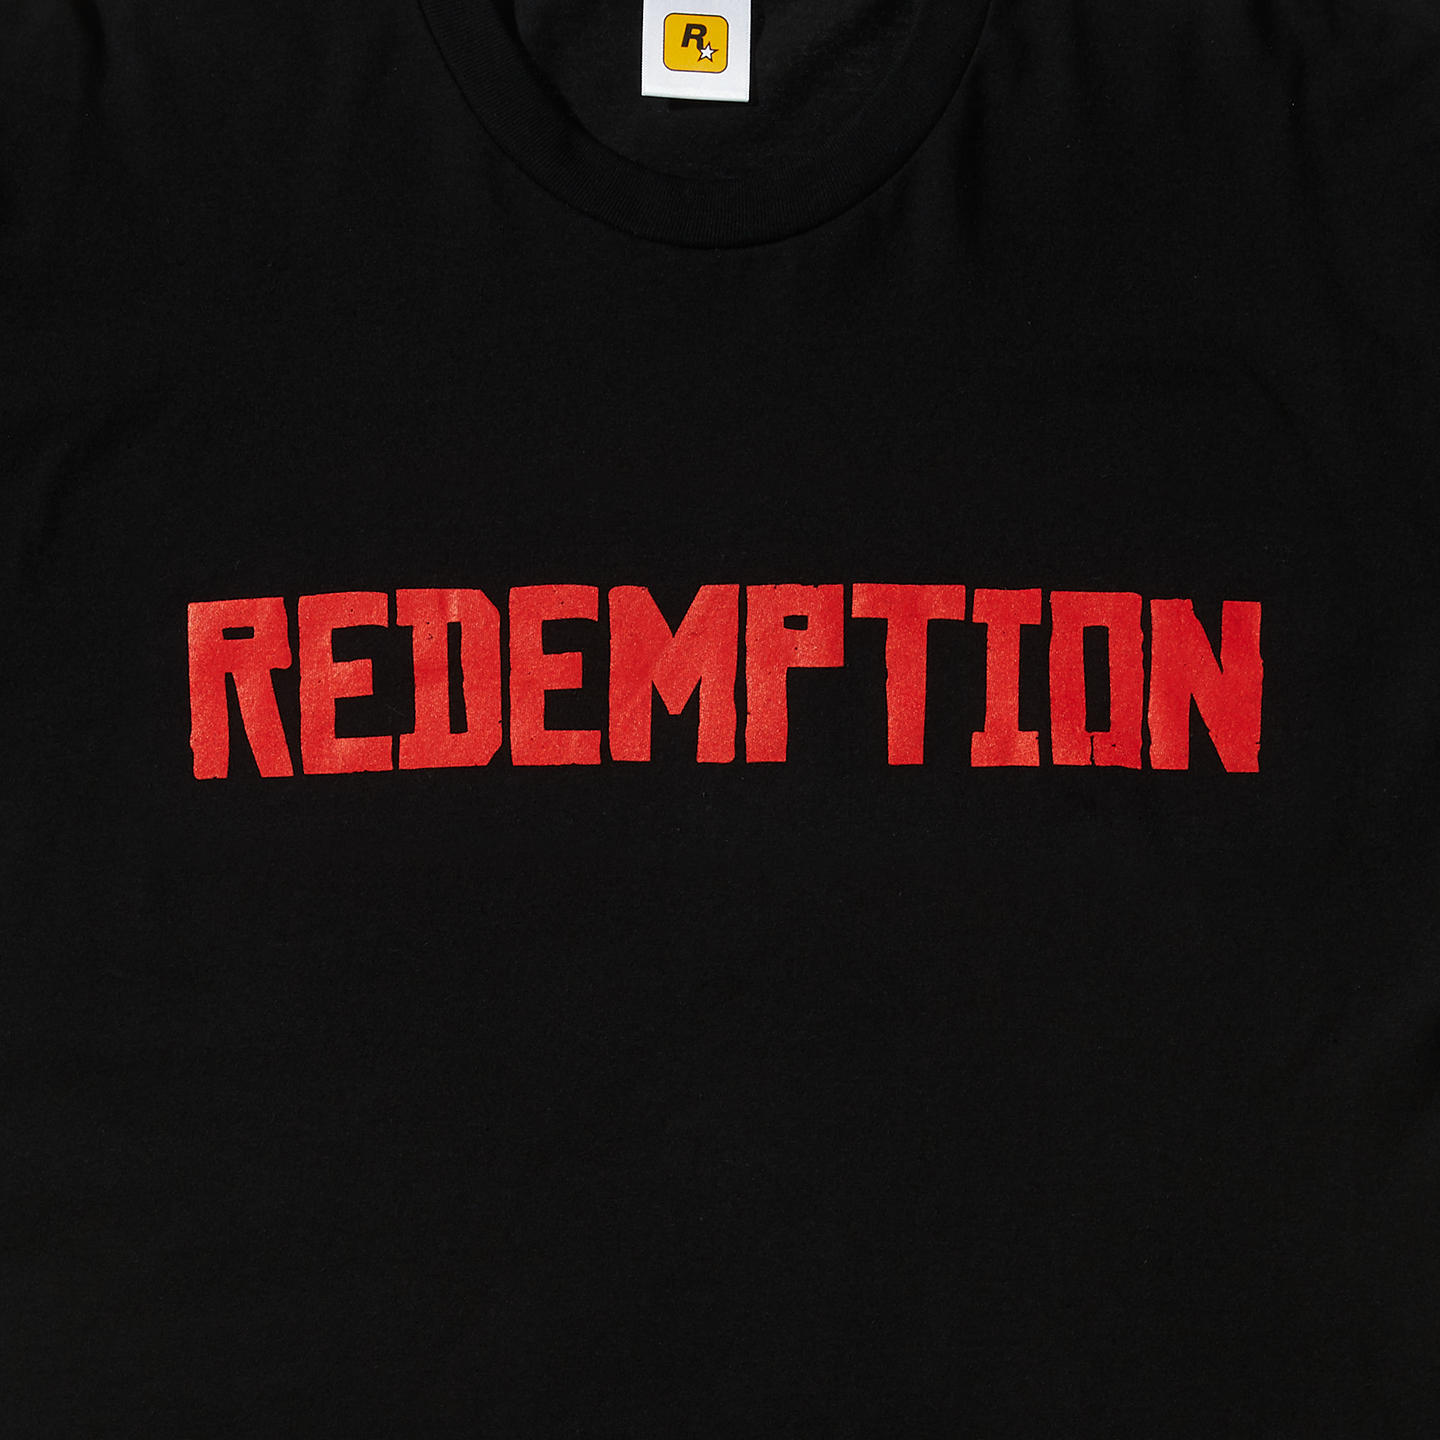 REDEMPTION Tee (Red on Black)